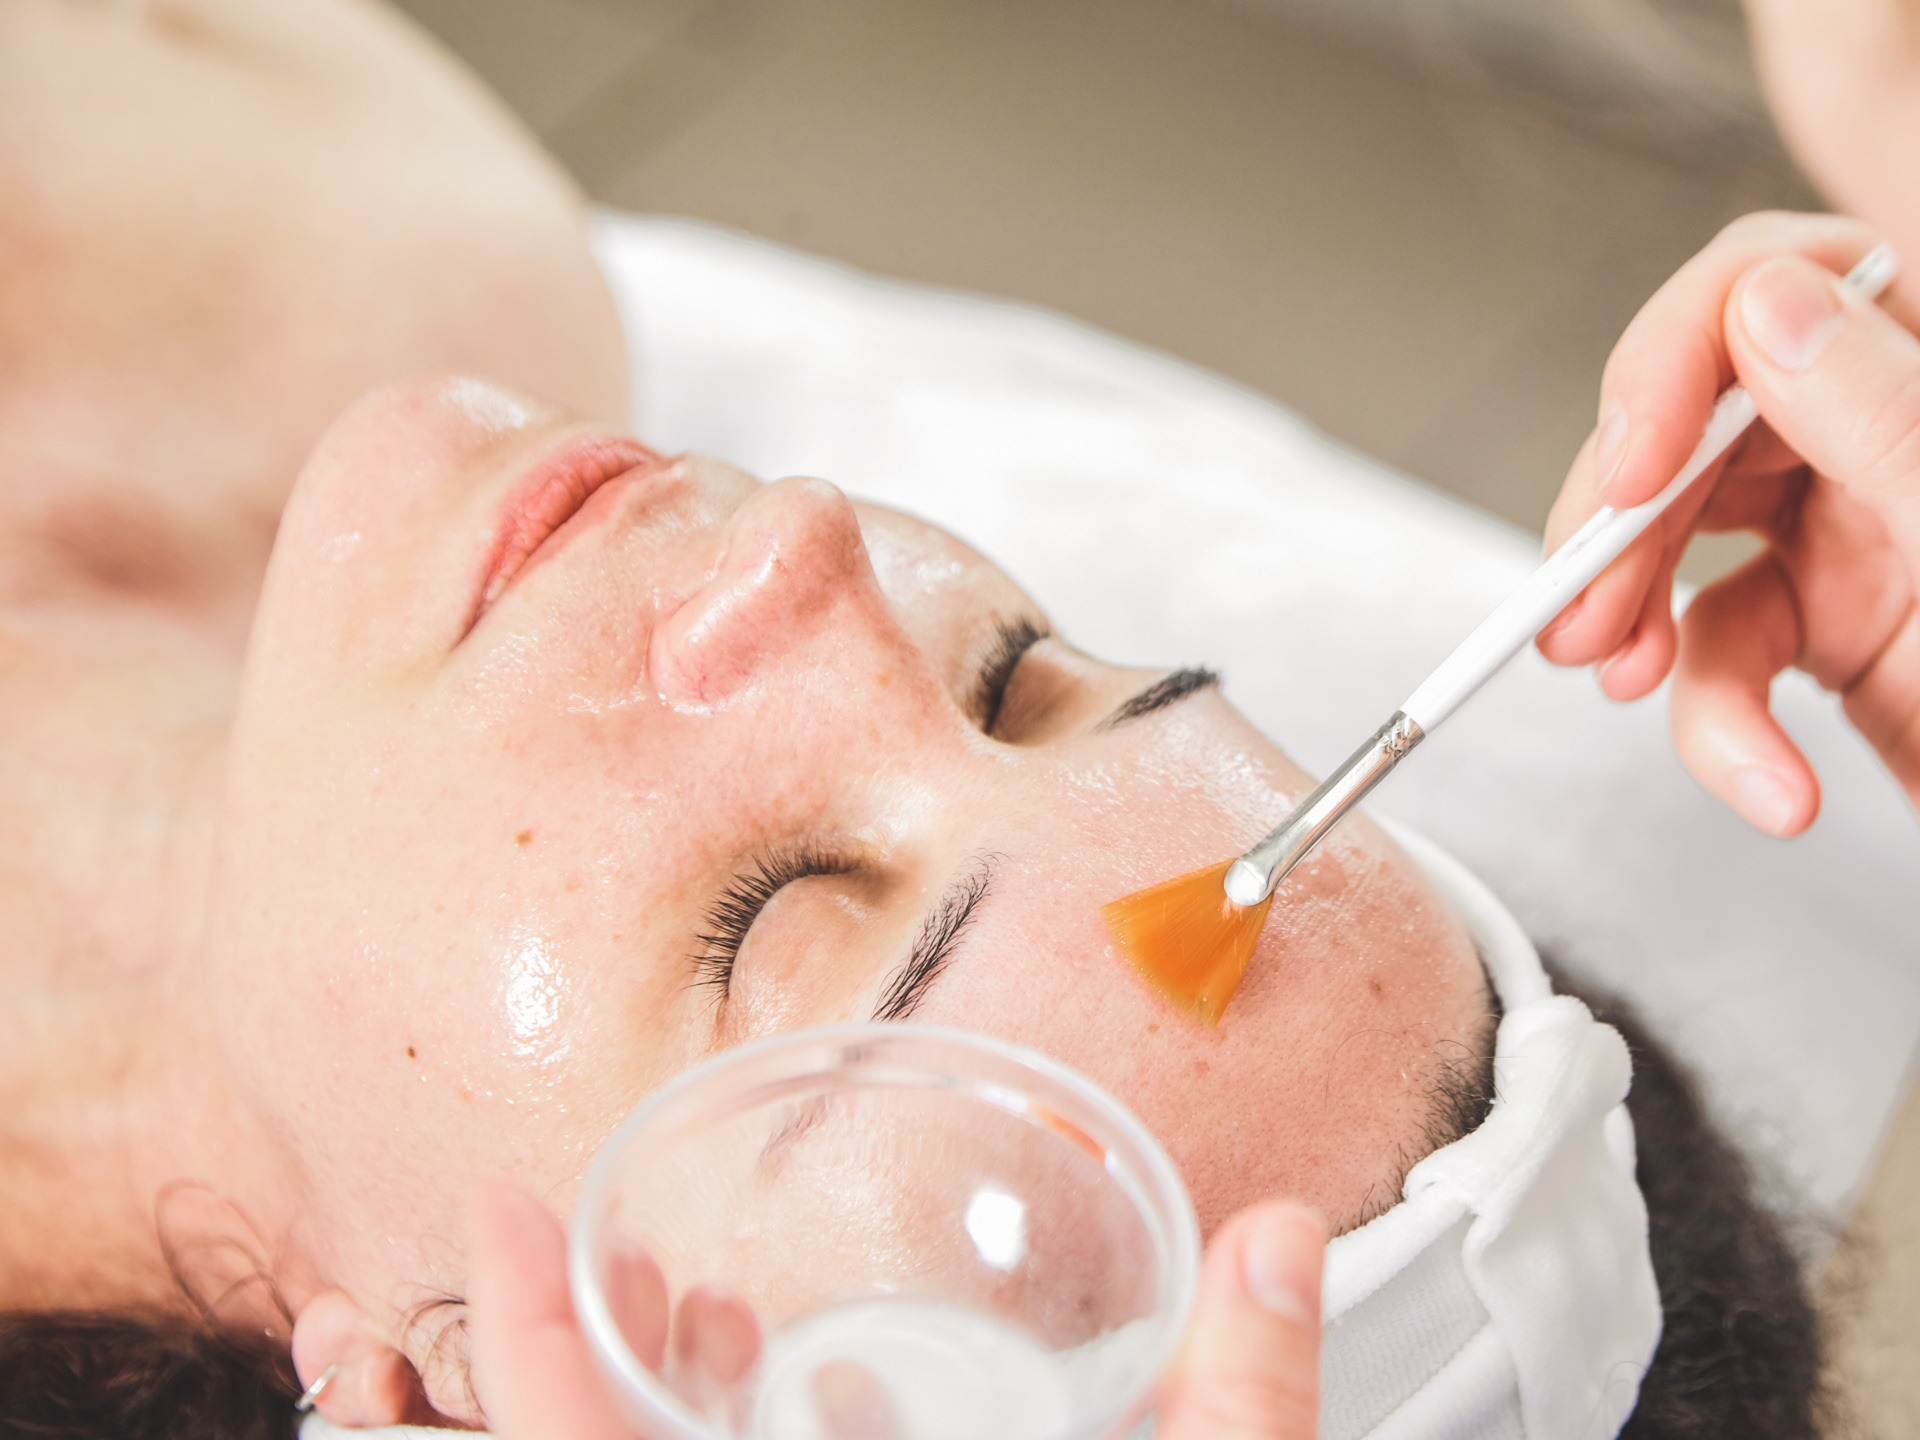 Facial peeling, skin treatment. A dermatologist applies of phytic acid with a white fan brush on female face. A caucasian woman in cosmetic clinic. Cosmetology, facial skin care. Girl in beauty salon